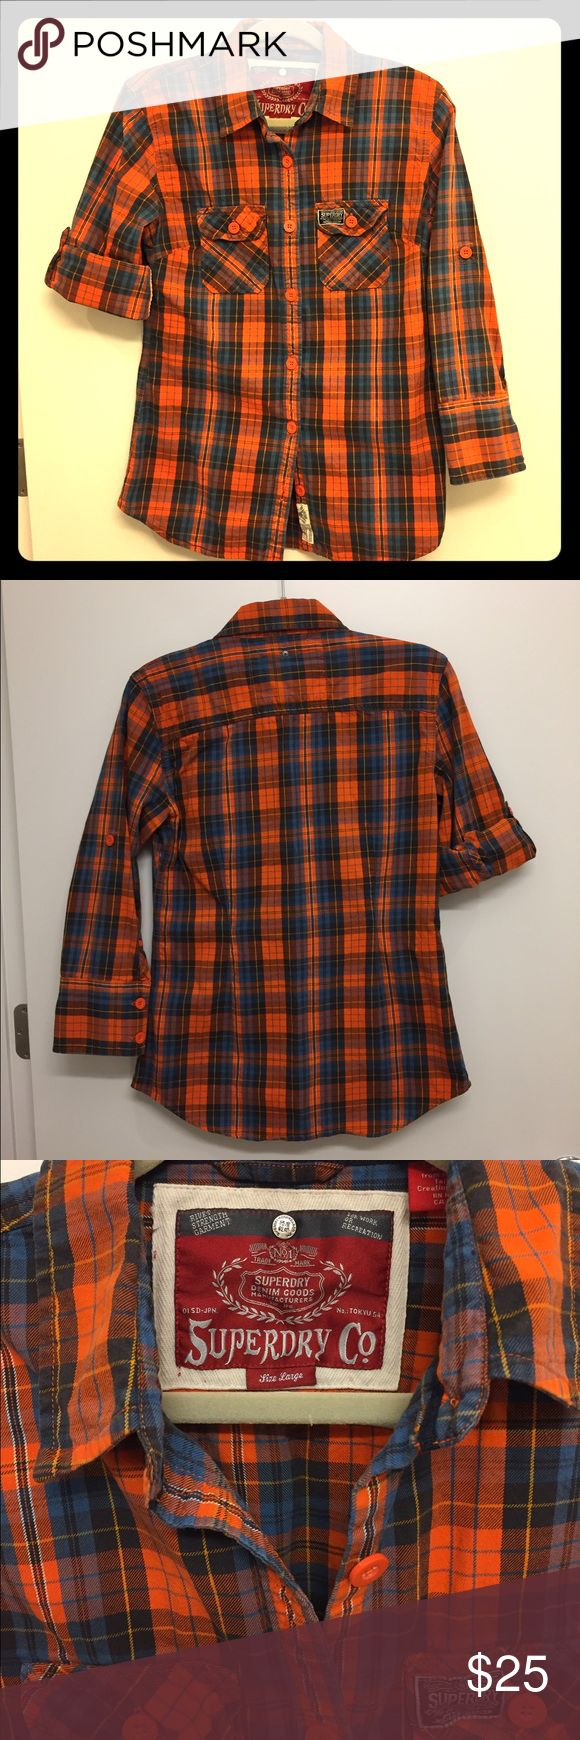 Superdry twill lumberjack plaid button down, large Superdry women's Lumberjack shirt, orange/blue plaid, size large. Brushed cotton twill with twin chest pockets. Superdry Tops Button Down Shirts